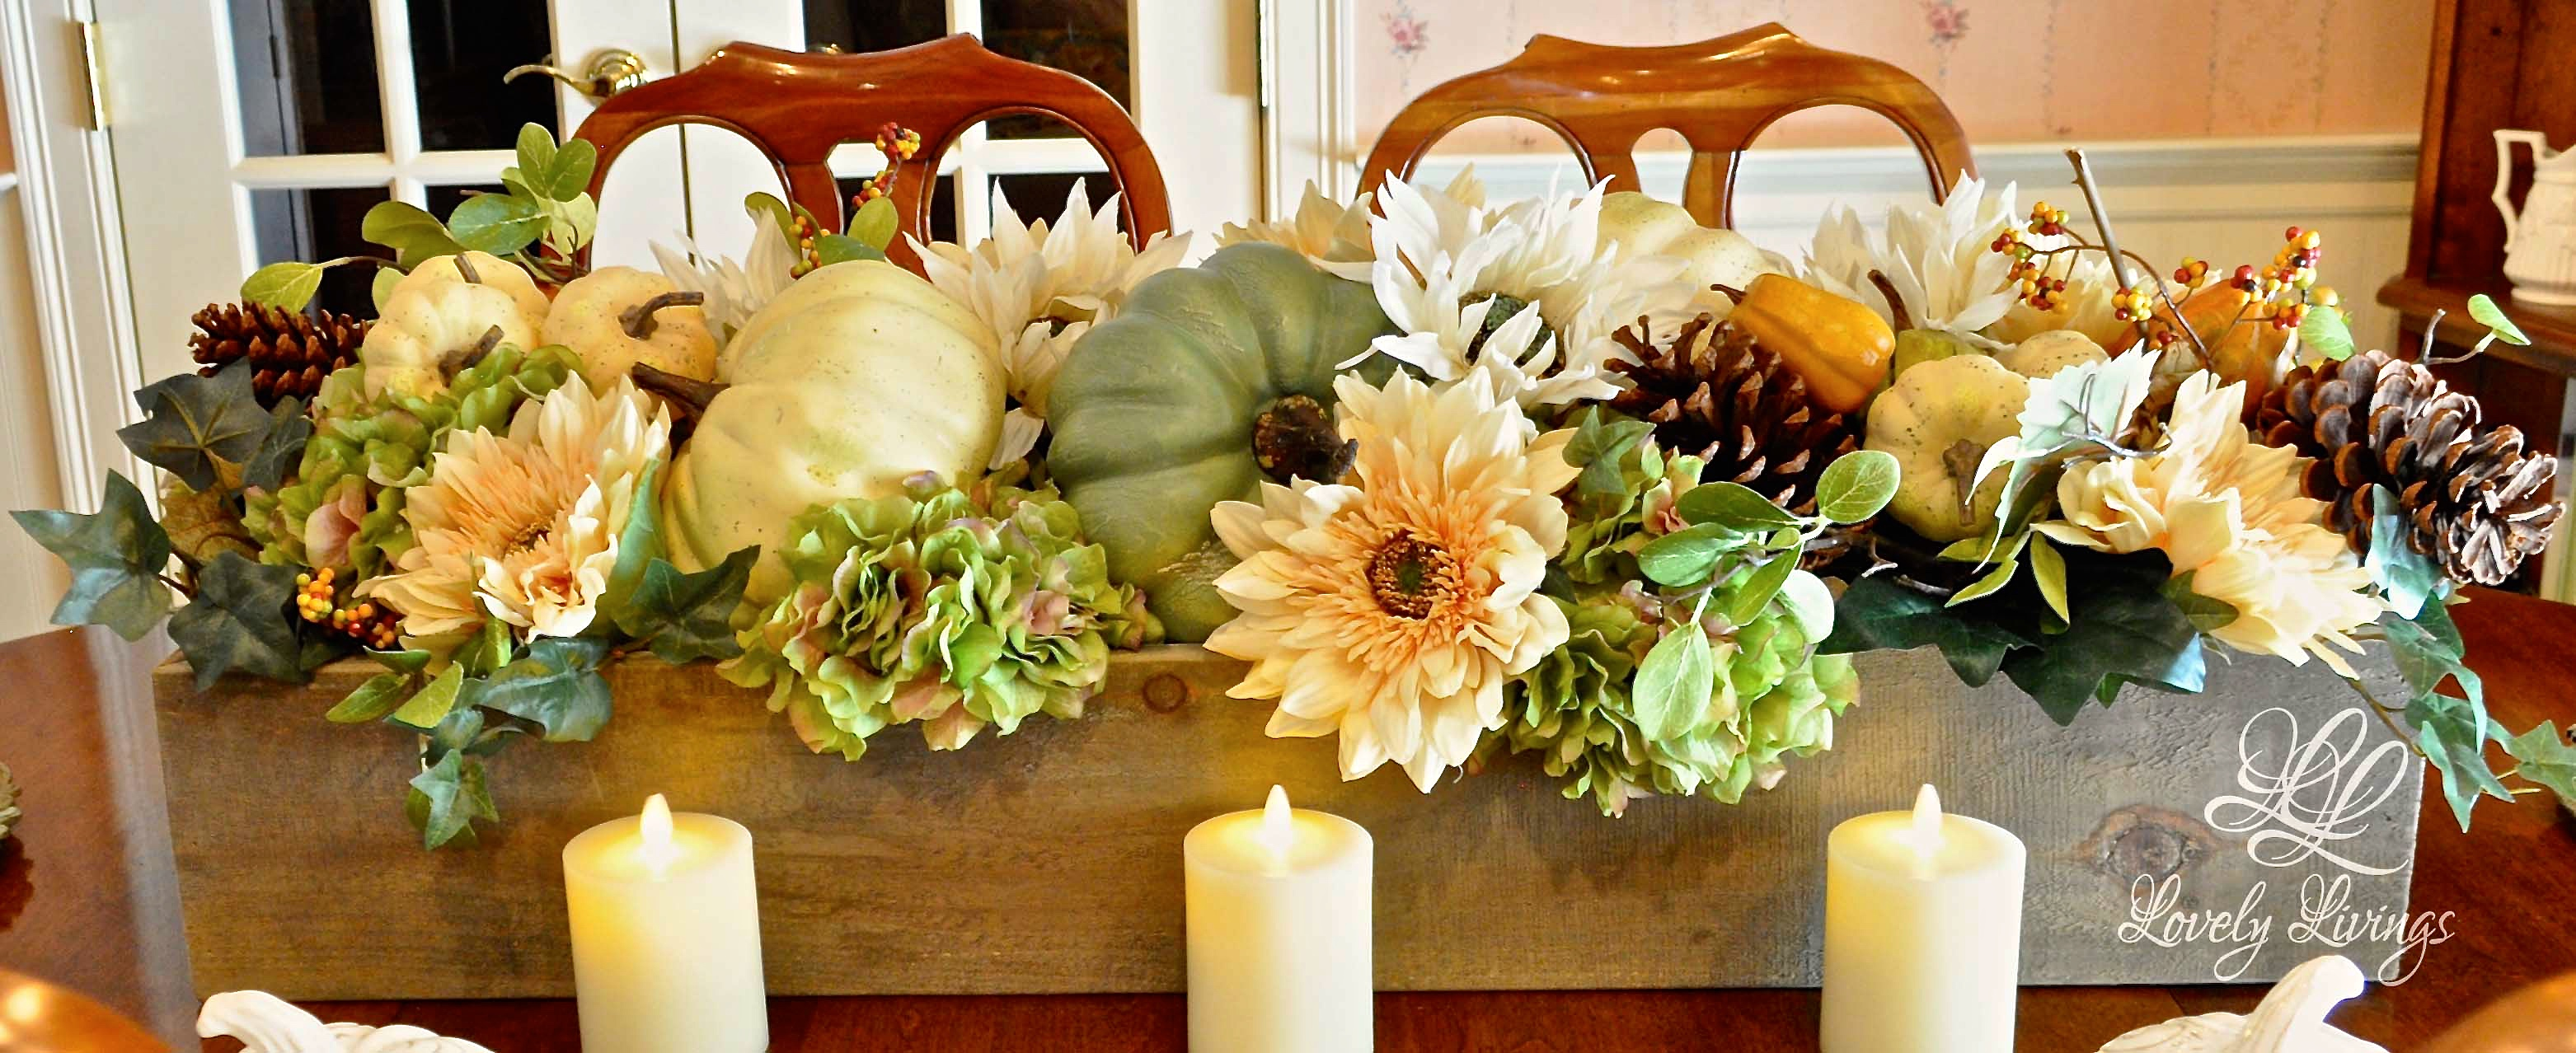 Autumn in august 7 ways to use pumpkins in your decor for 3 tier pumpkin decoration